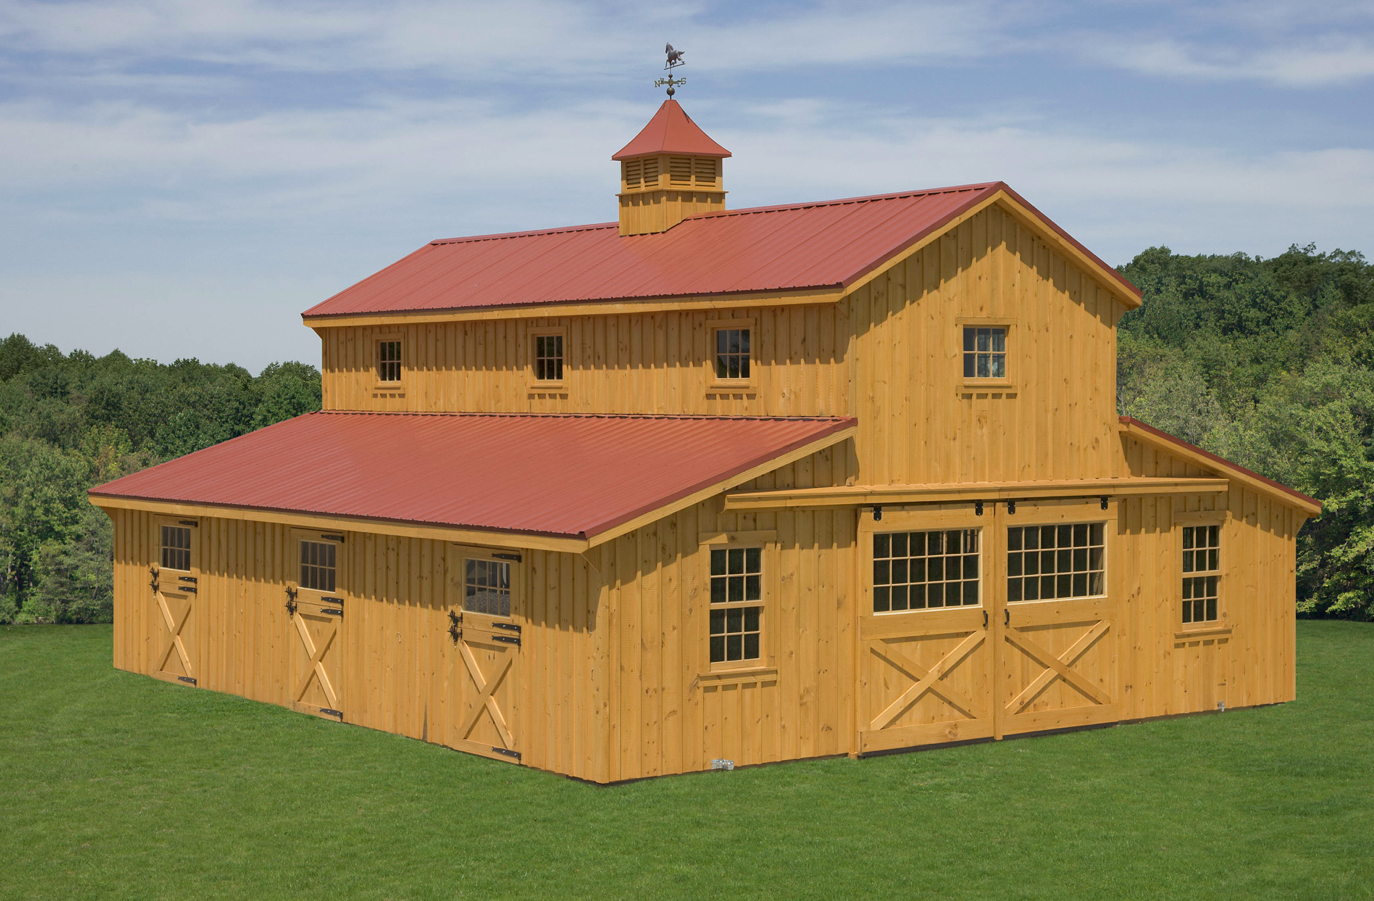 Barn designs north country sheds monitor horse barns for Shed cupola plans